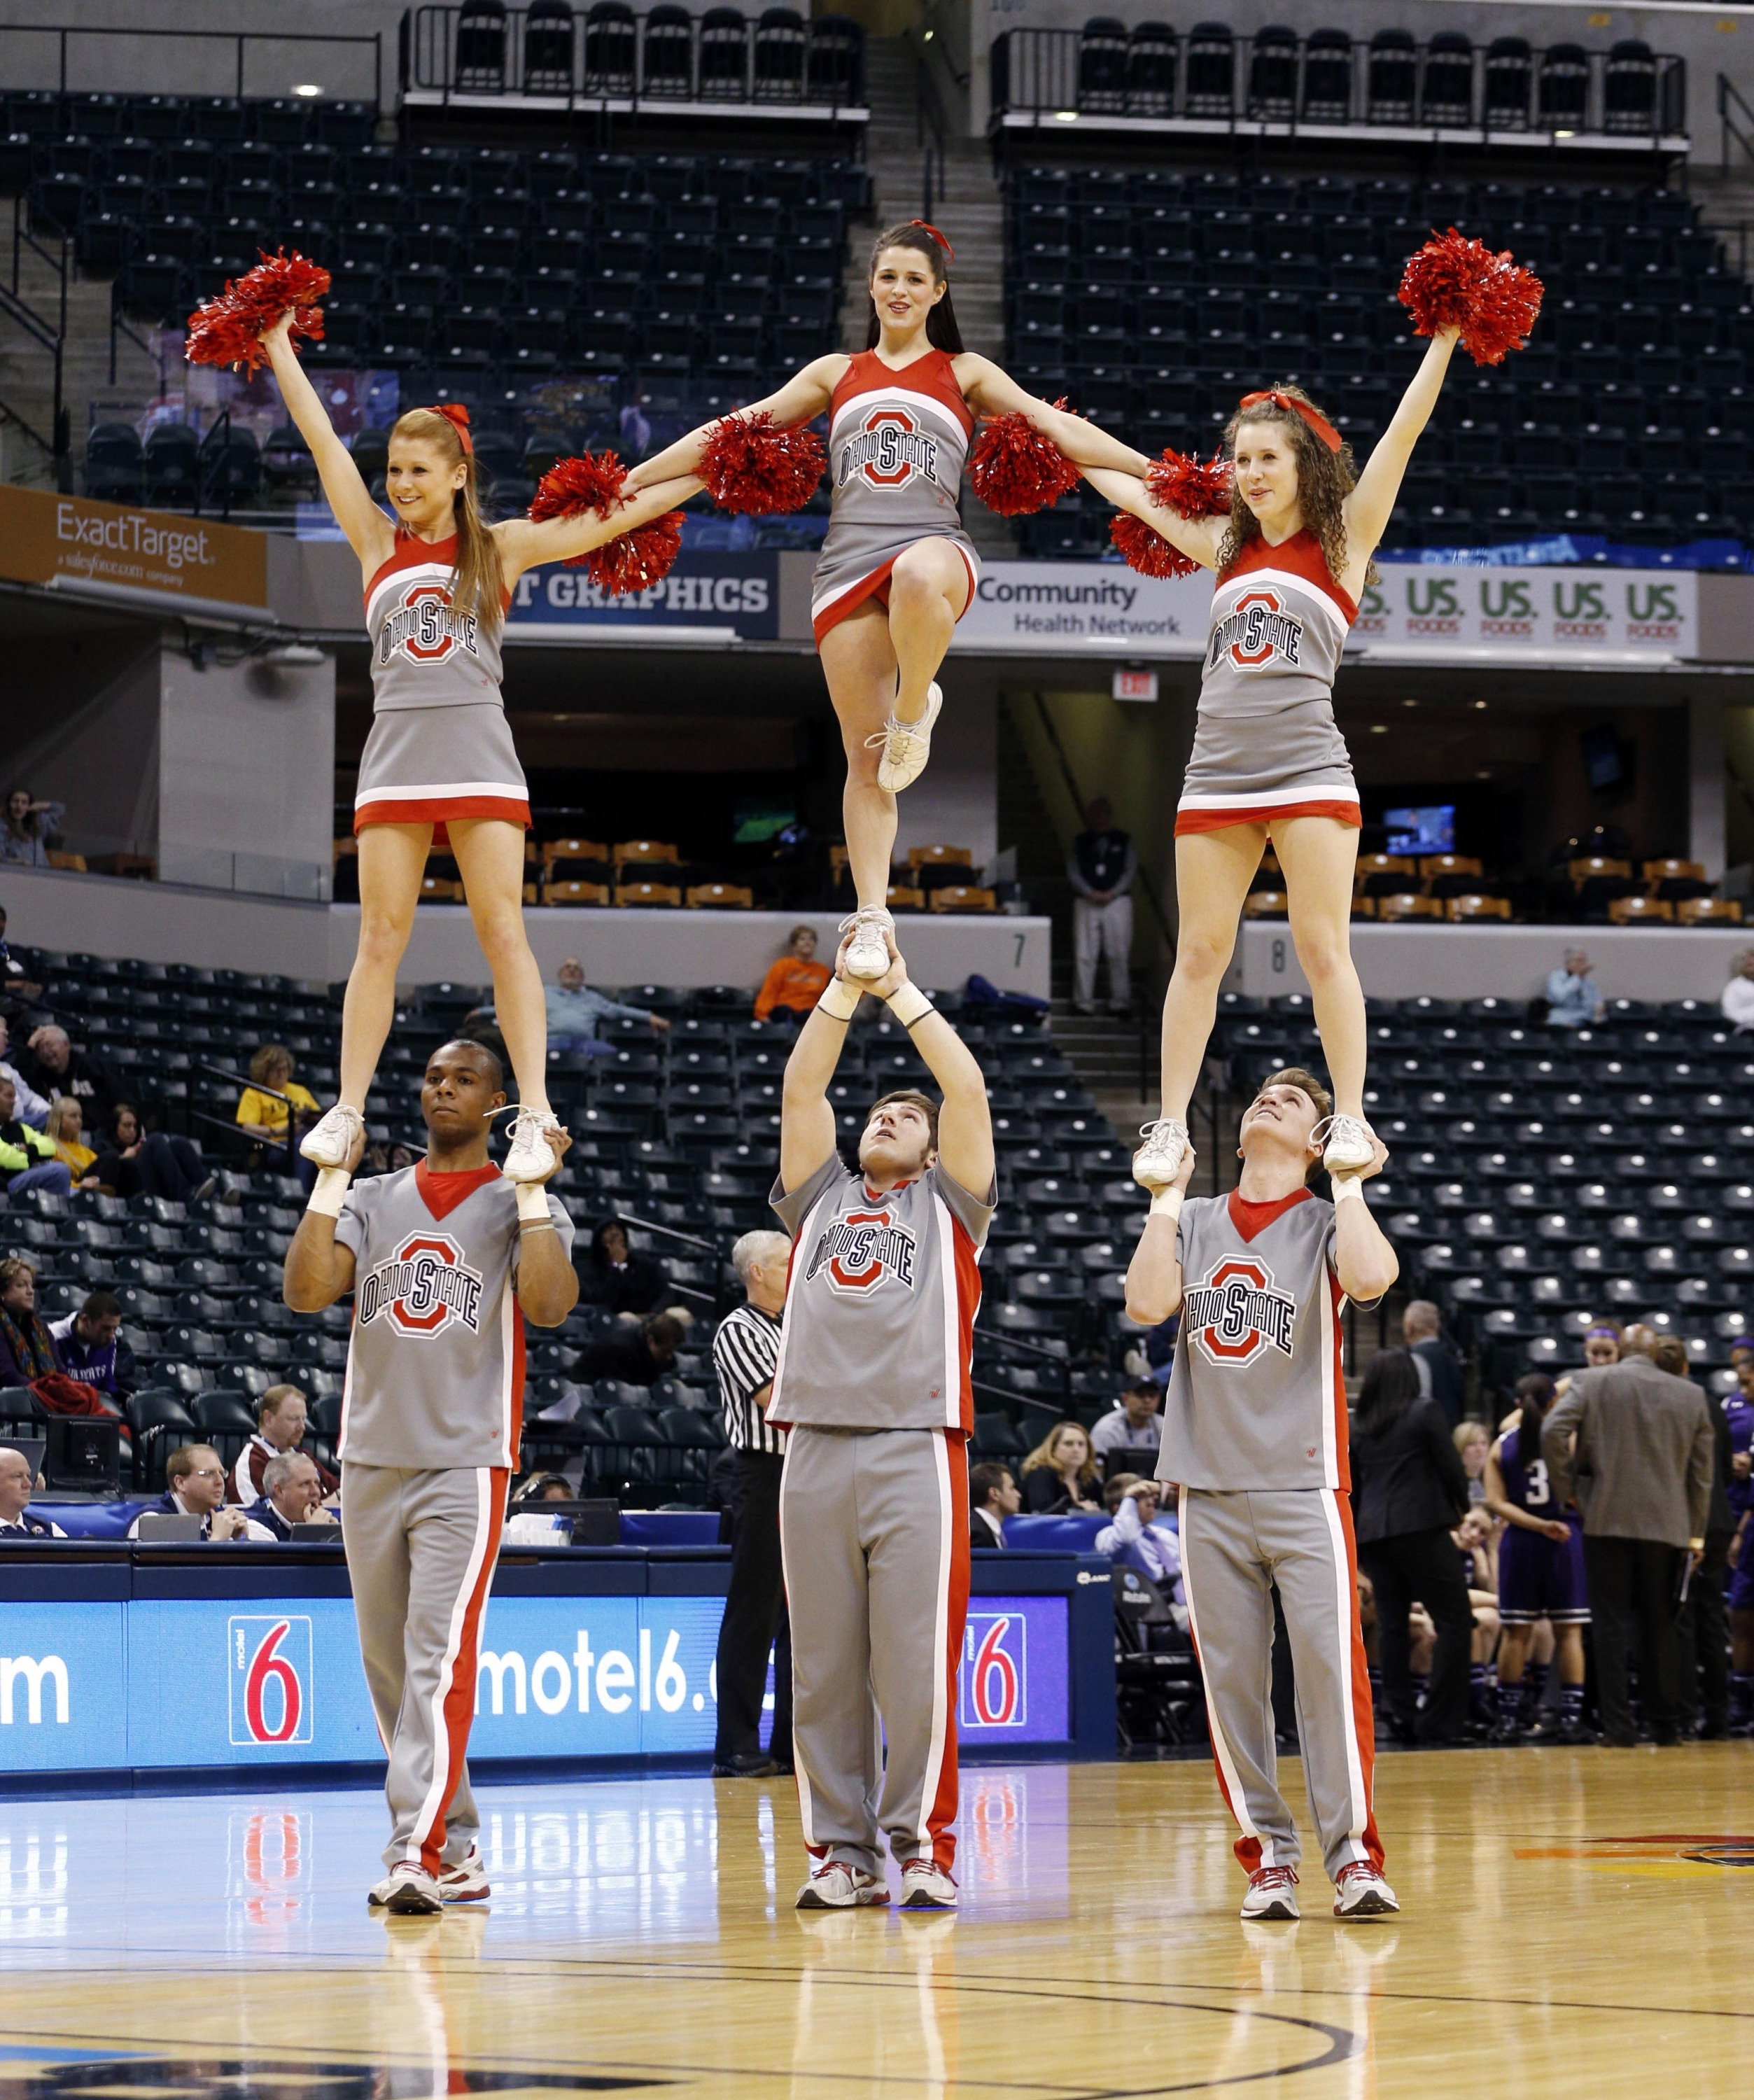 Mar 6, 2014; Indianapolis, IN, USA; Ohio State Buckeyes cheerleaders perform a cheer during a game against the Northwestern Wildcats at Bankers Life Fieldhouse. Ohio State defeats Northwestern 86-77.  Mandatory Credit: Brian Spurlock-USA TODAY Sports